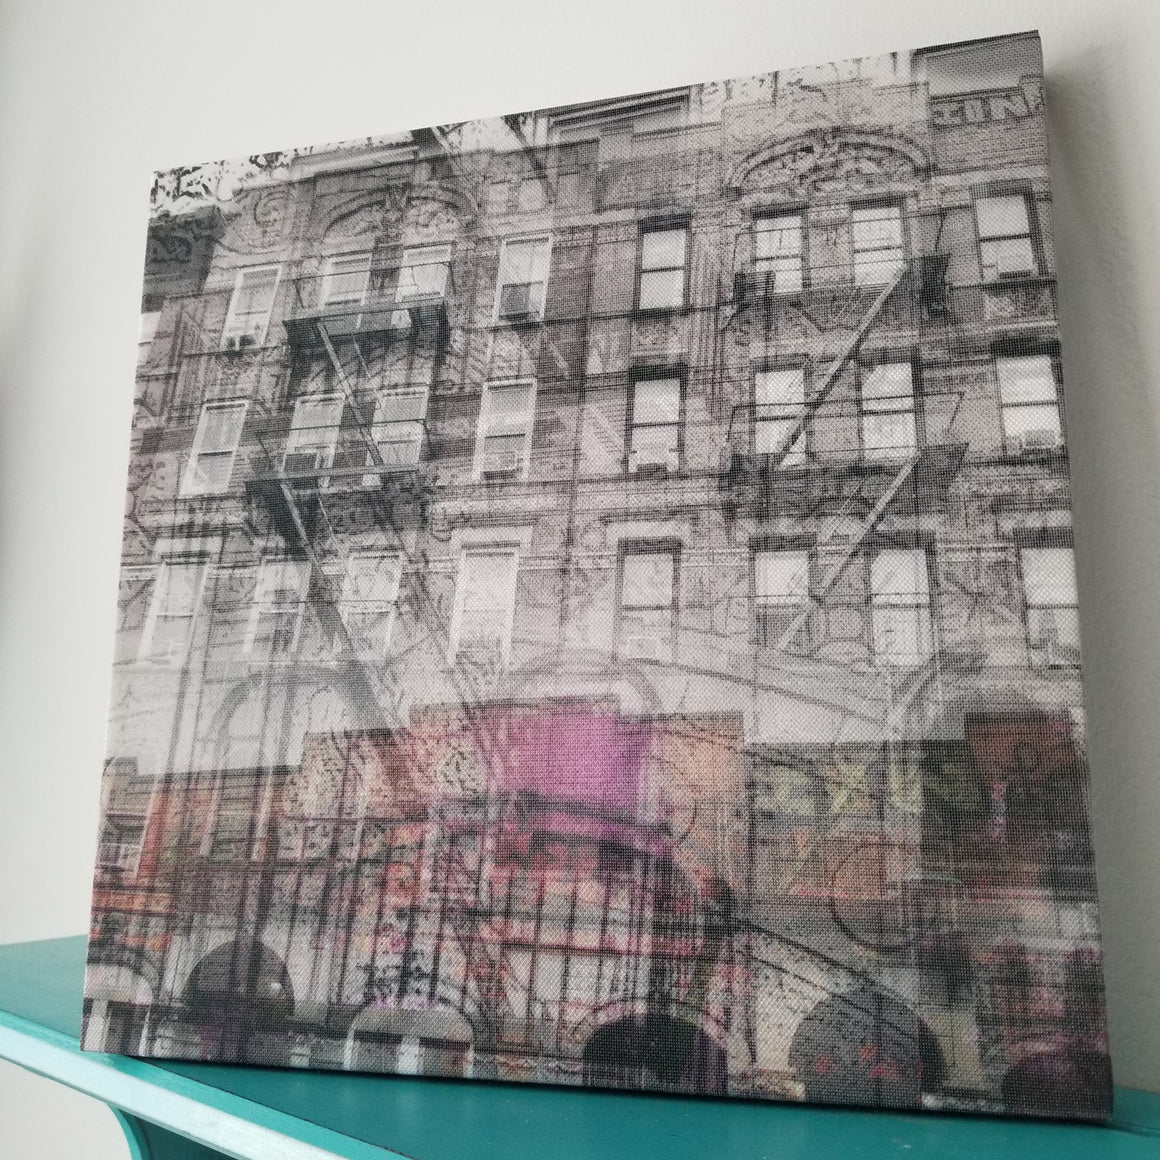 "St Marks Place - New York 13"" Canvas Wall Art - Photo Collage"